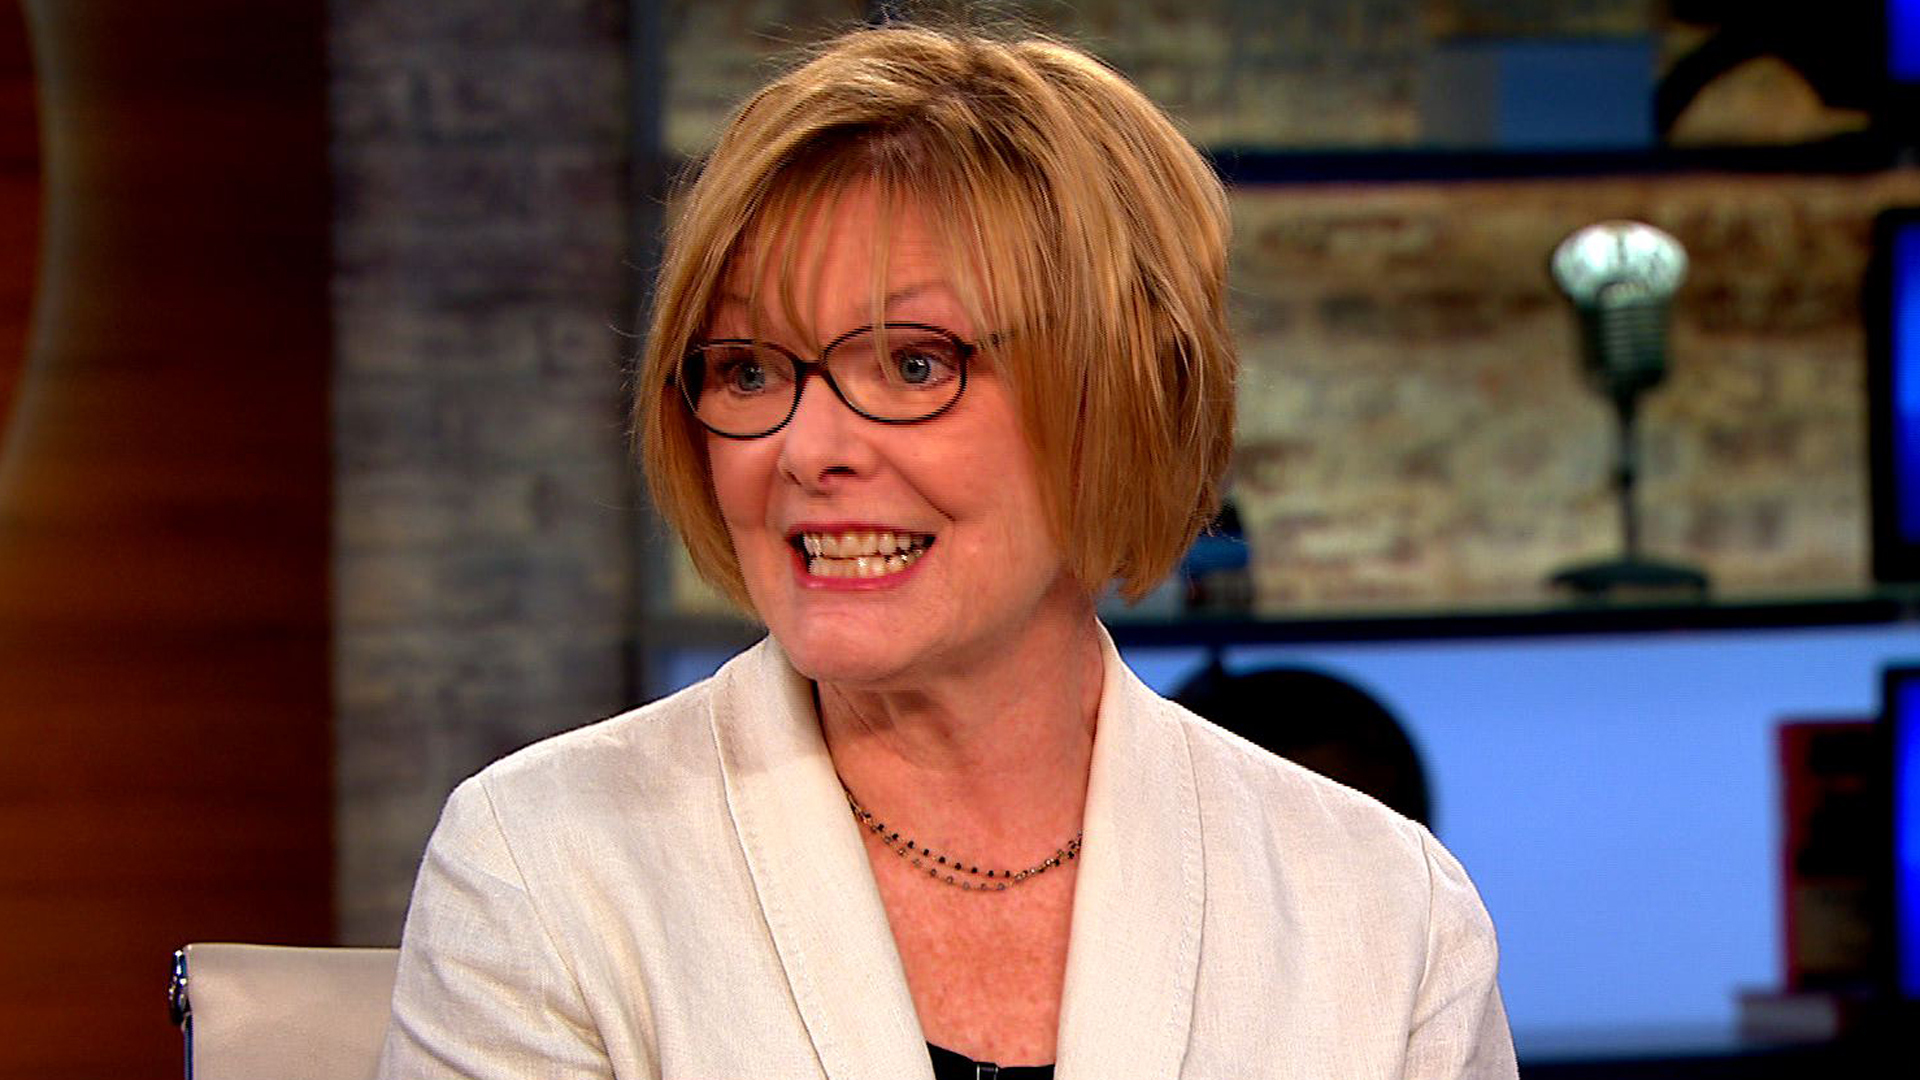 Quot Queen Of Deadpan Quot Jane Curtin On Old School Quot Snl Quot Cbs News